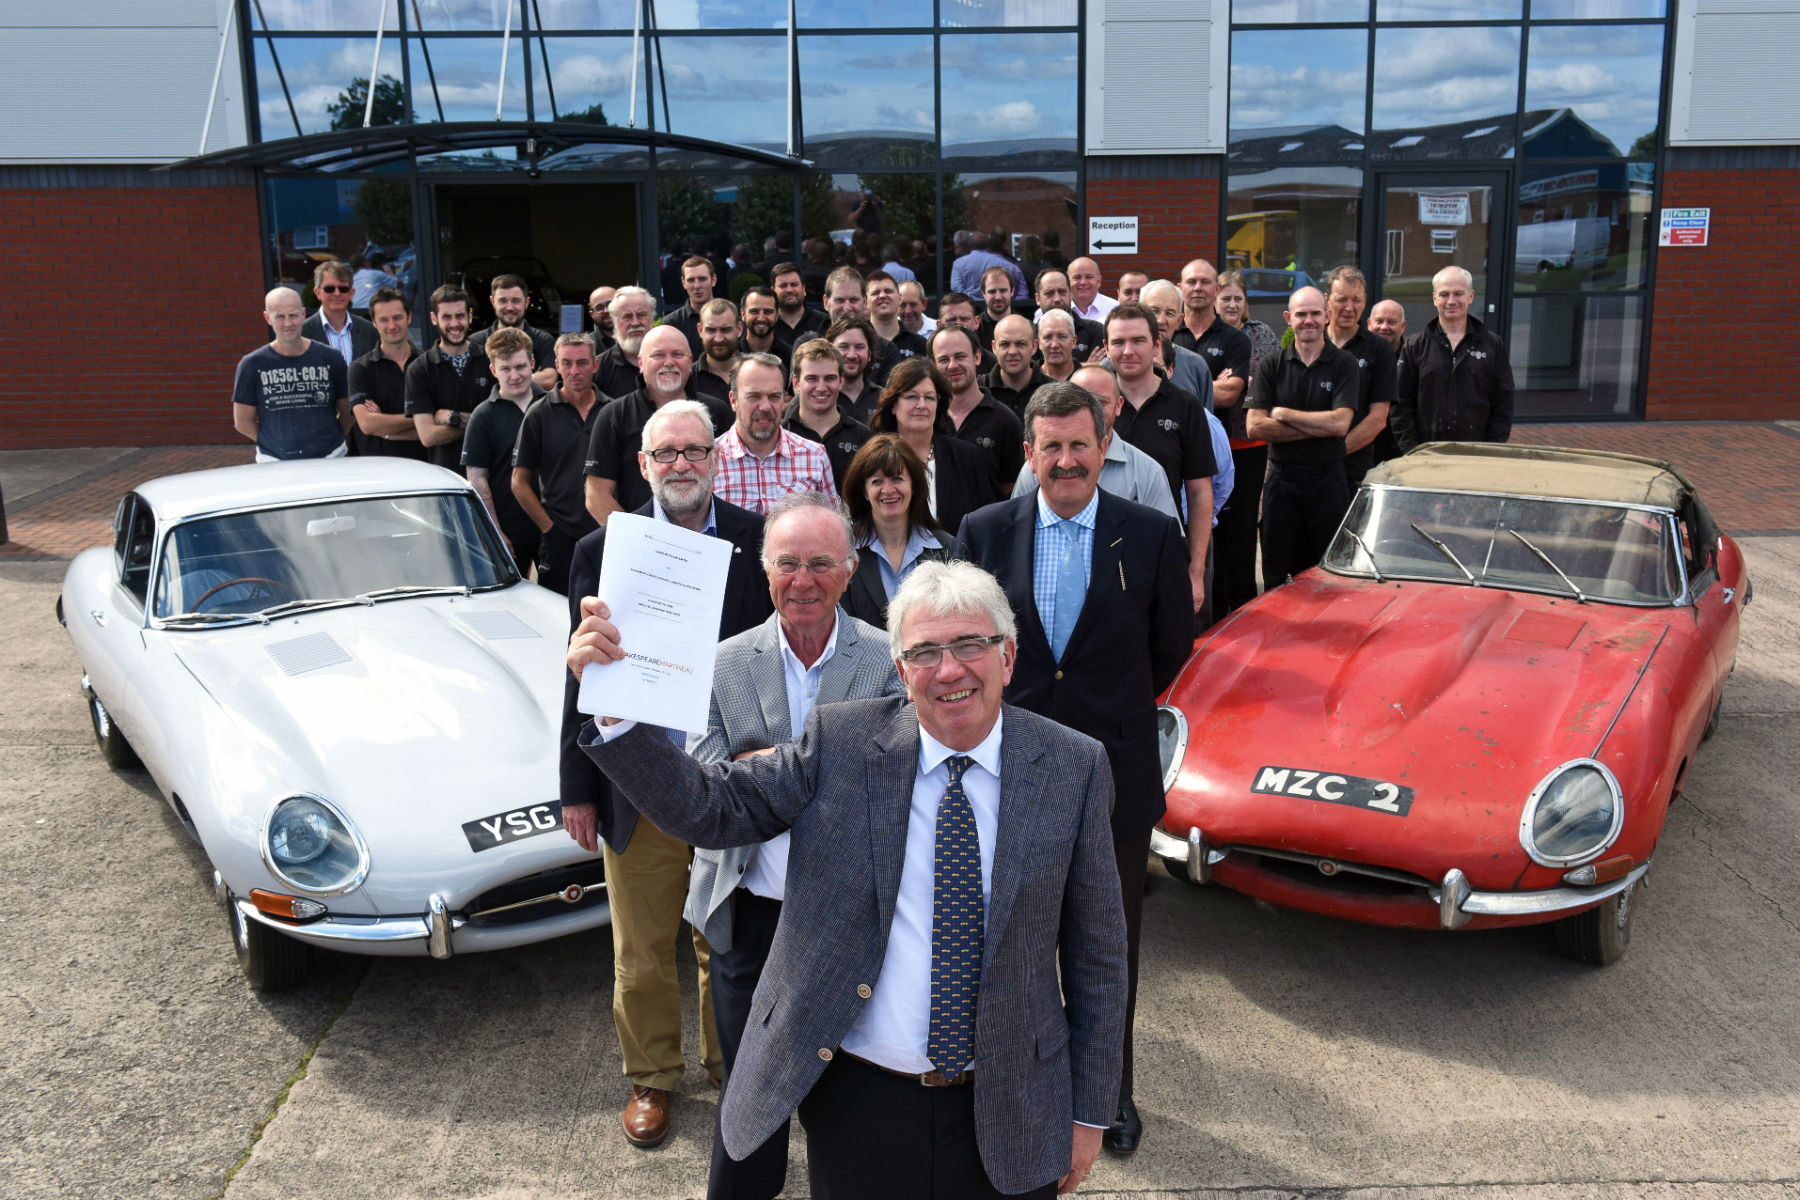 Classic car company boss gives firm to staff